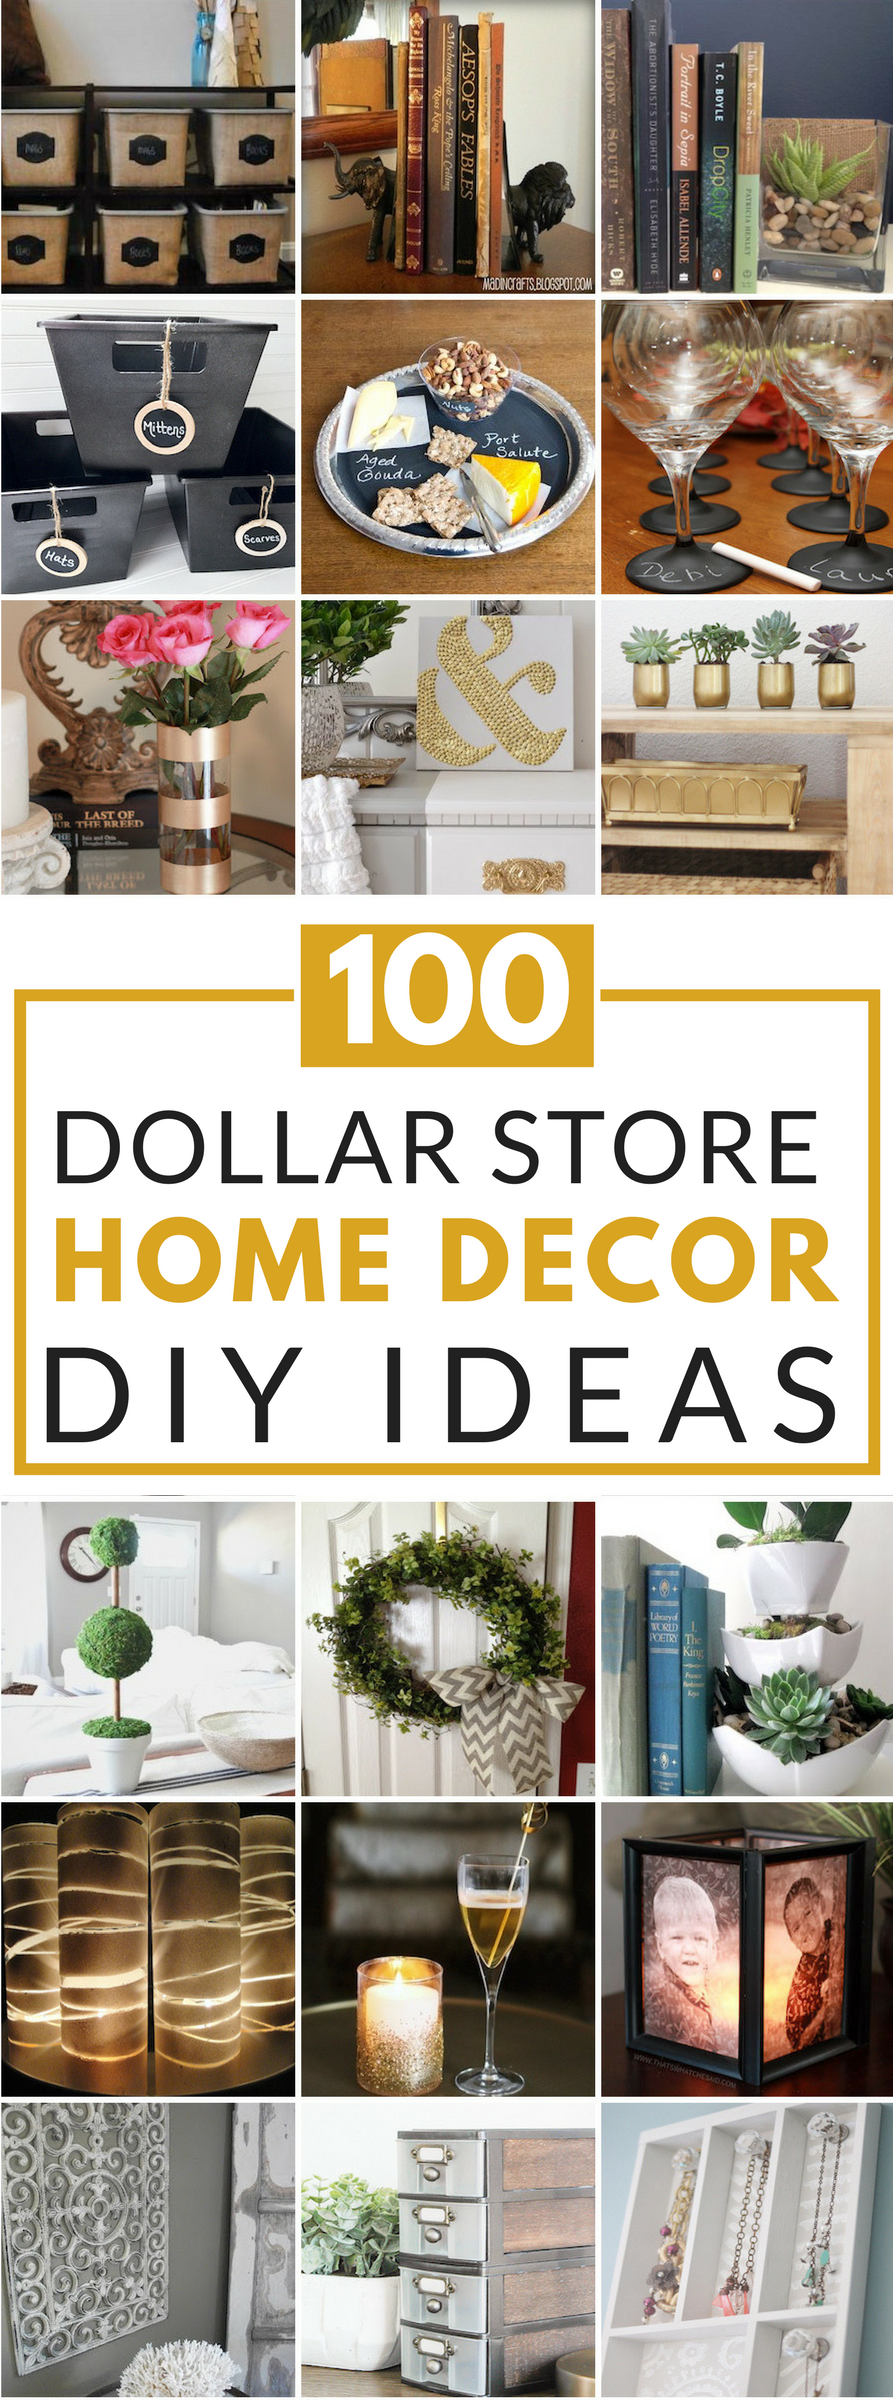 3 Home Decor Trends For Spring Brittany Stager: 100 Dollar Store DIY Home Decor Ideas